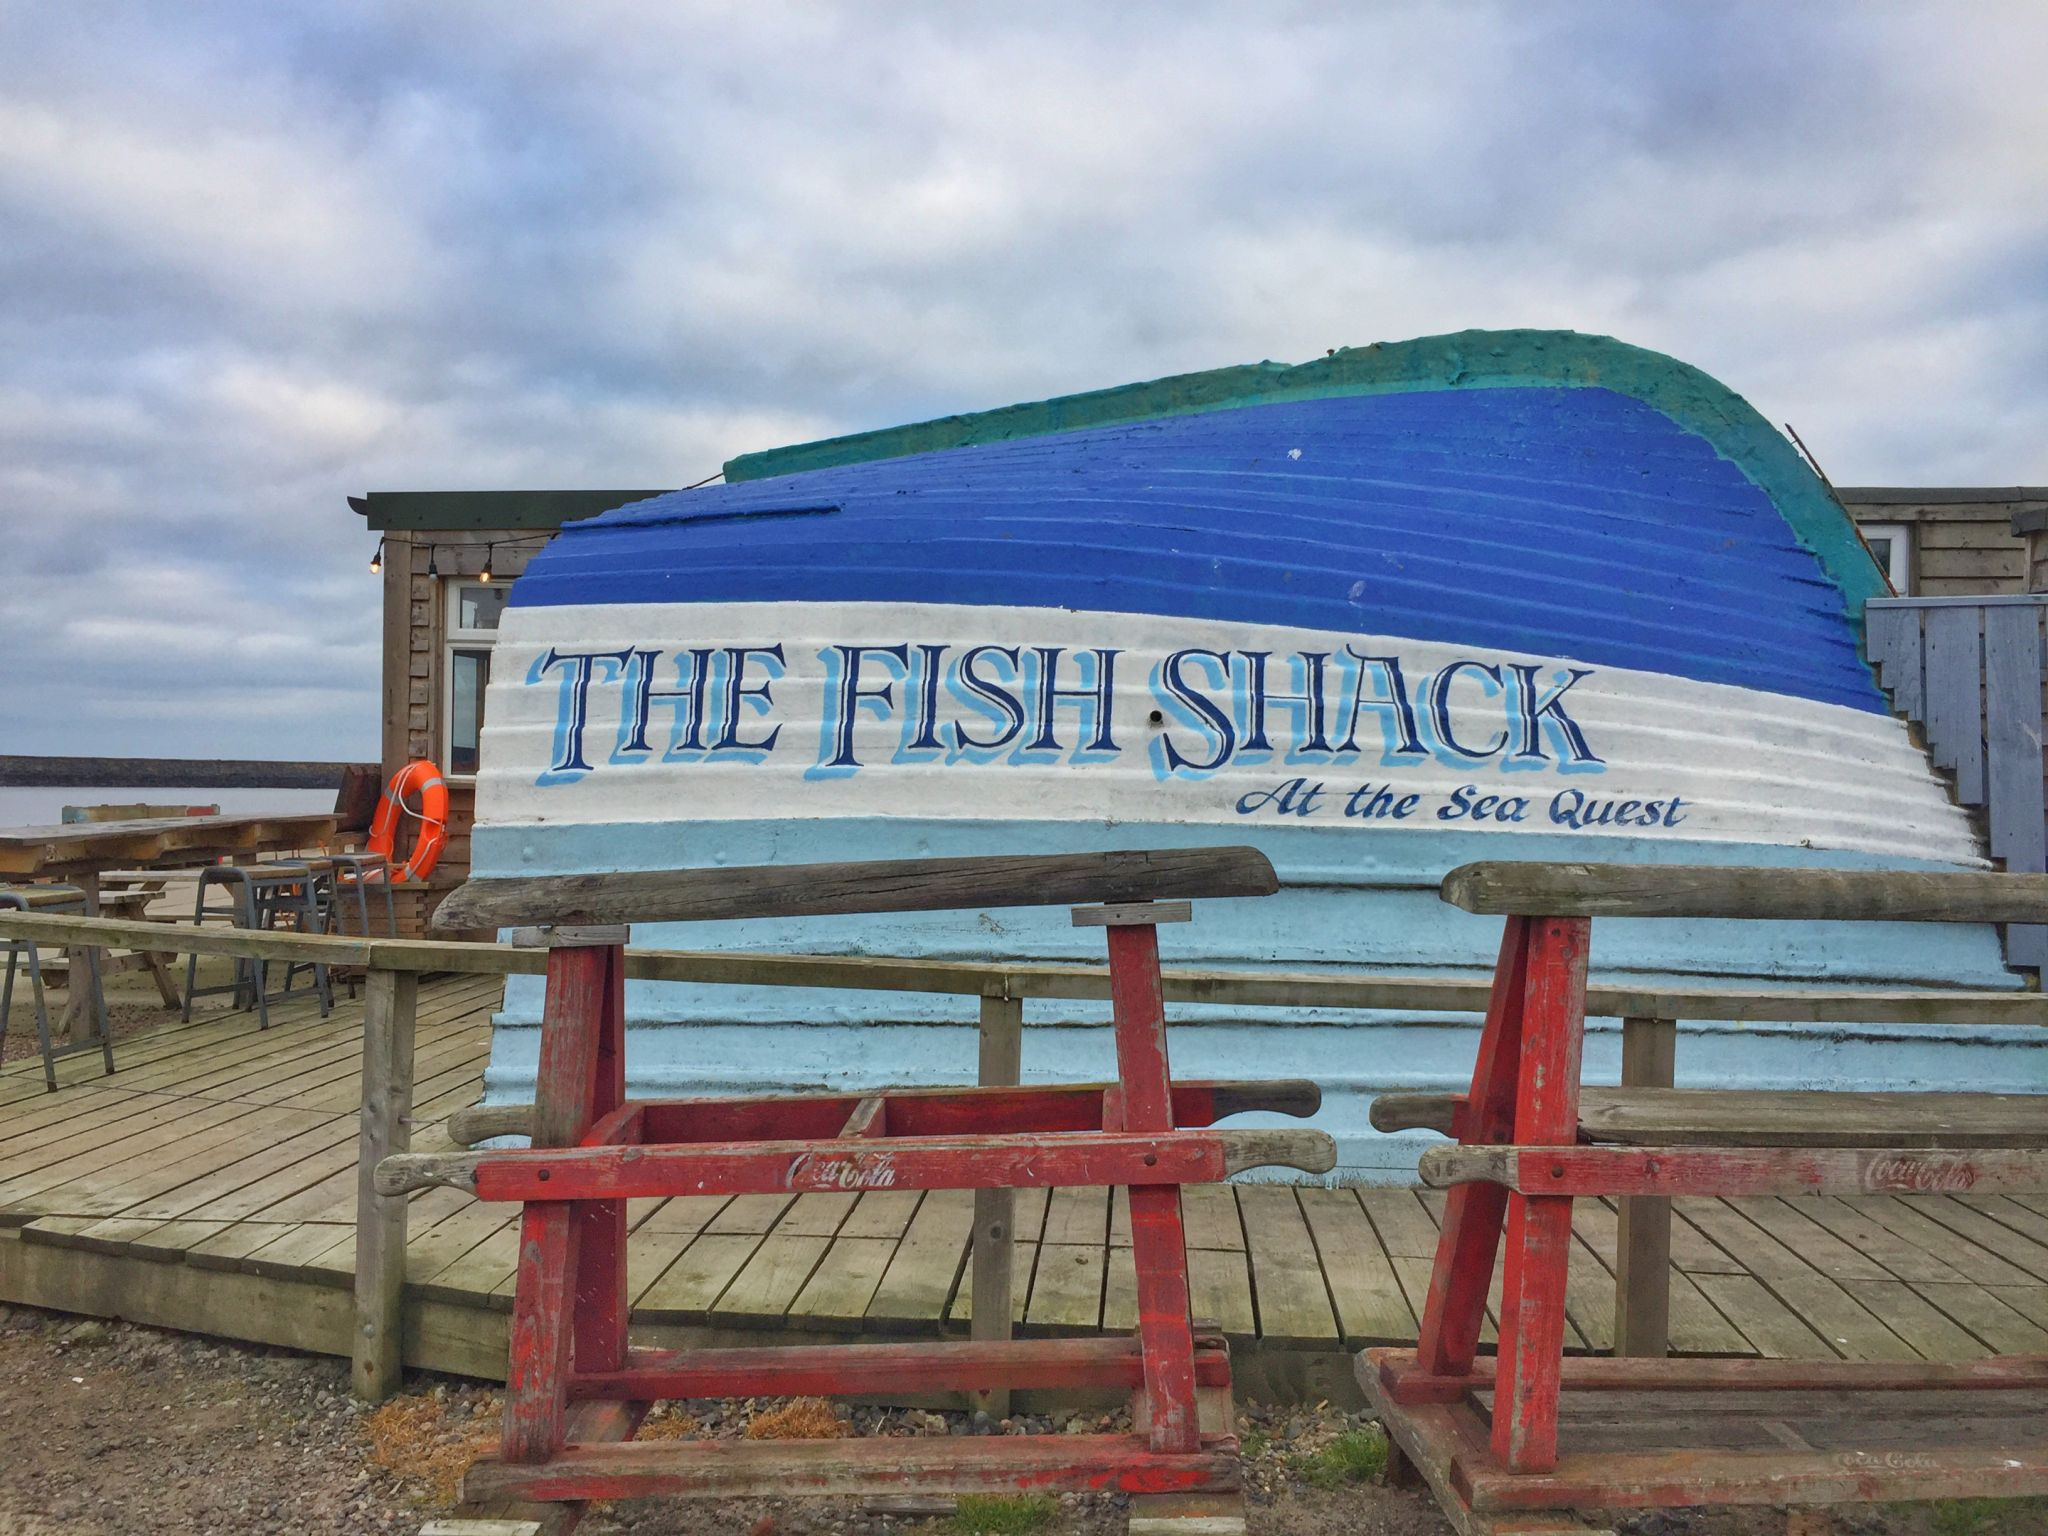 Hiking Amble to Alnmouth. The Fish Shack, Amble